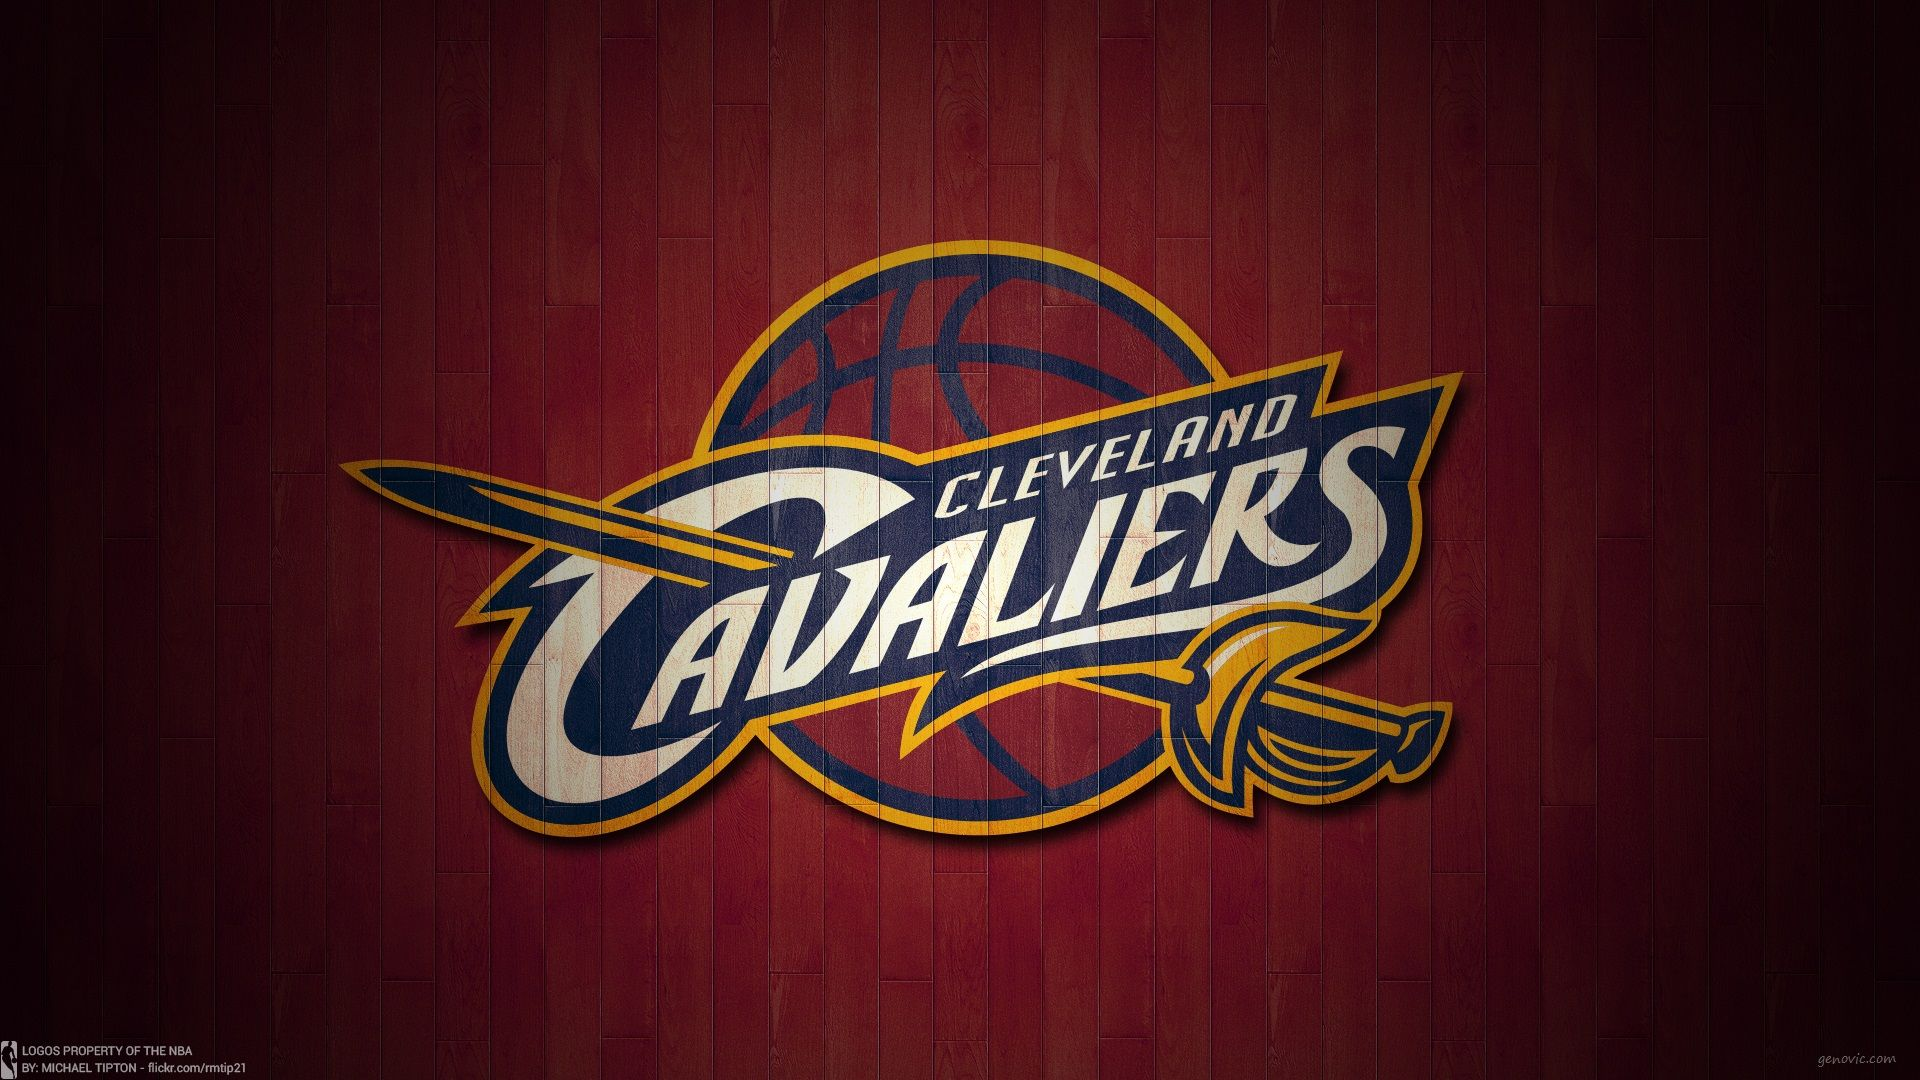 Hd wallpaper nba - Cleveland Cavaliers Hd Wallpaper Crafts Pinterest Cleveland Cleveland Cavs And Nba